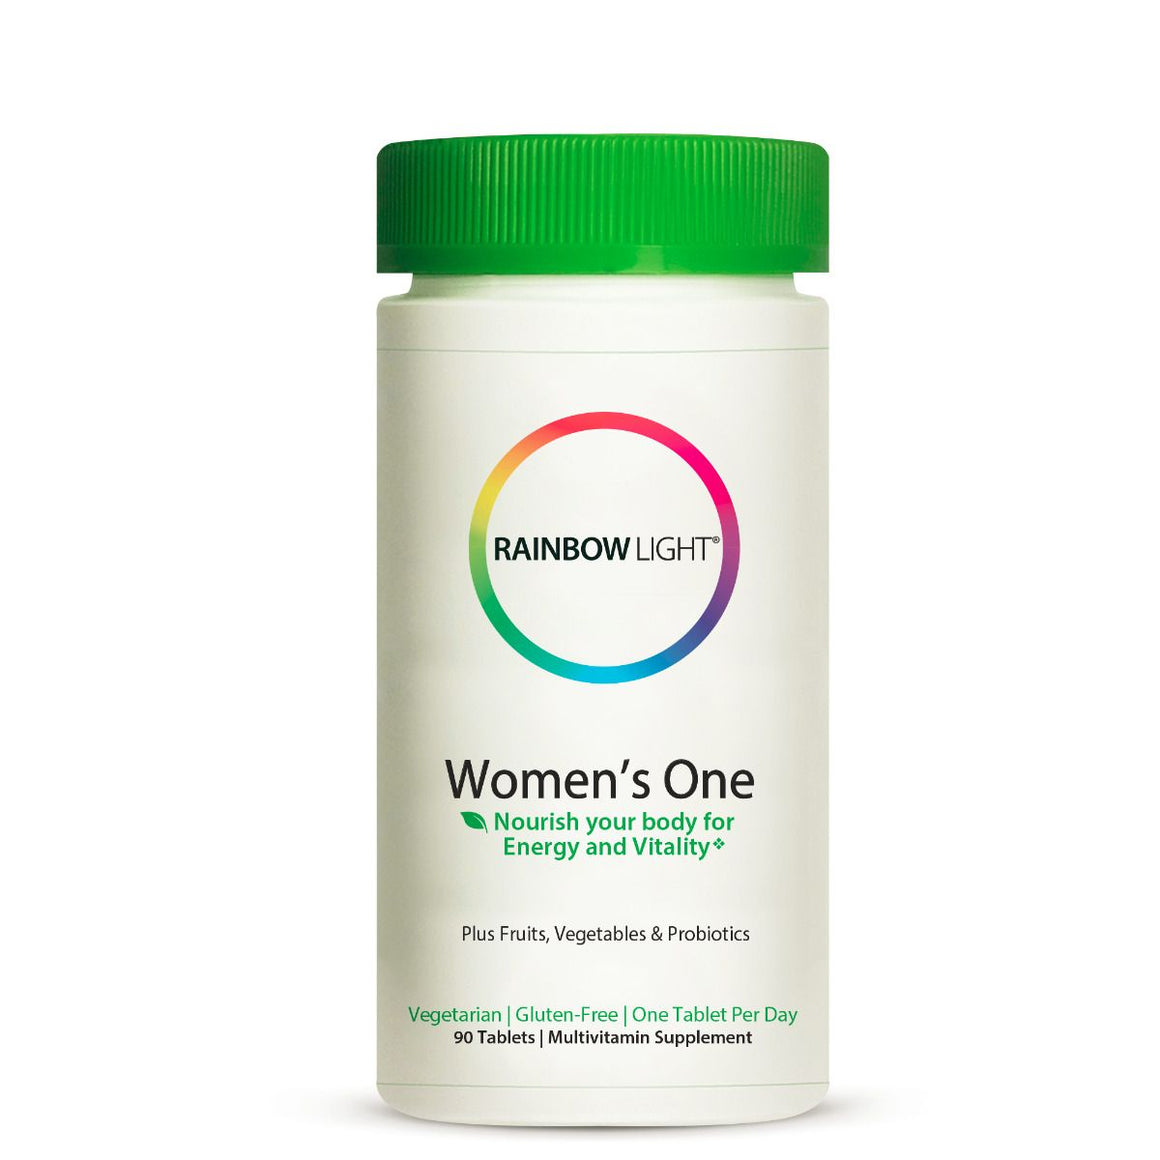 A bottle of Rainbow Light Women's One Multivitamin